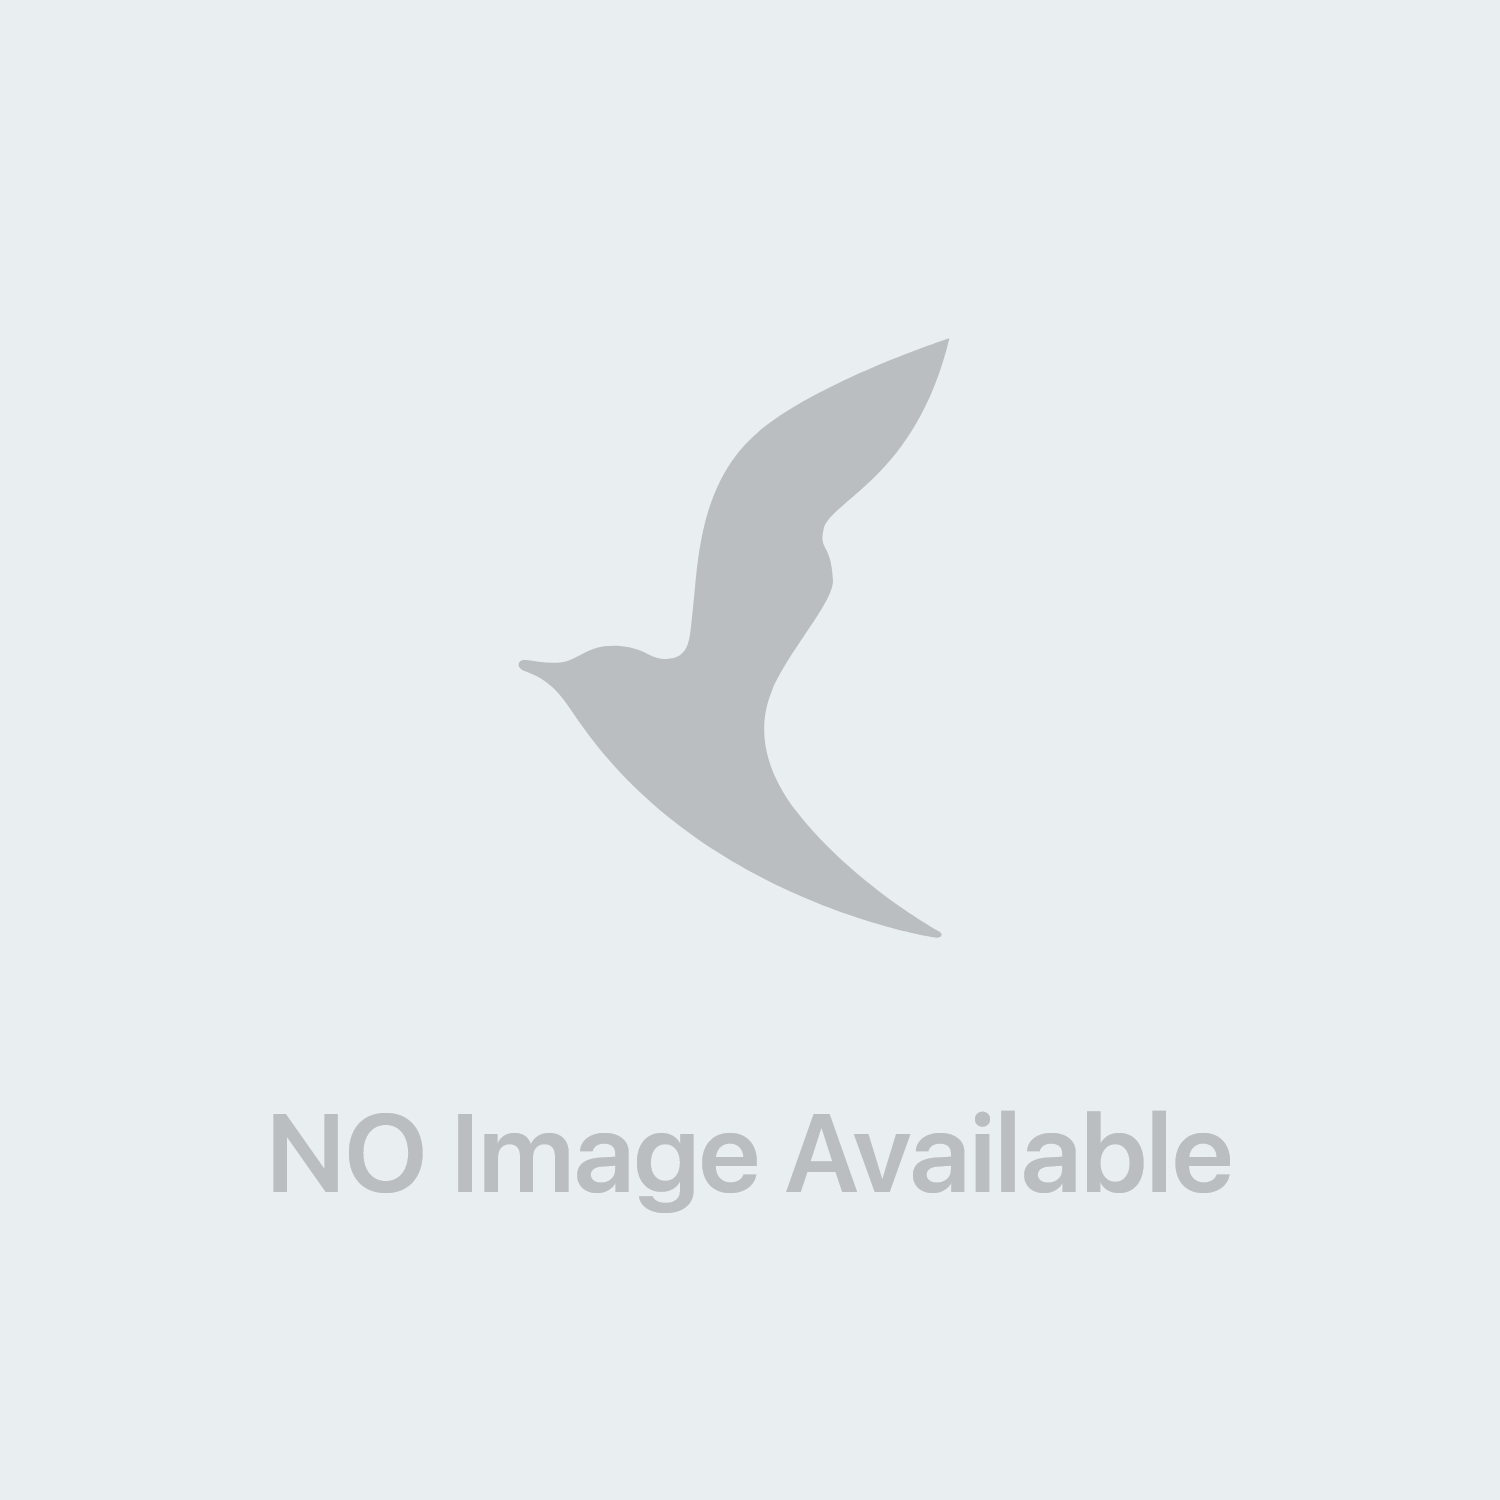 Transversal 16 Cerotti 13,5 mg/12 mm